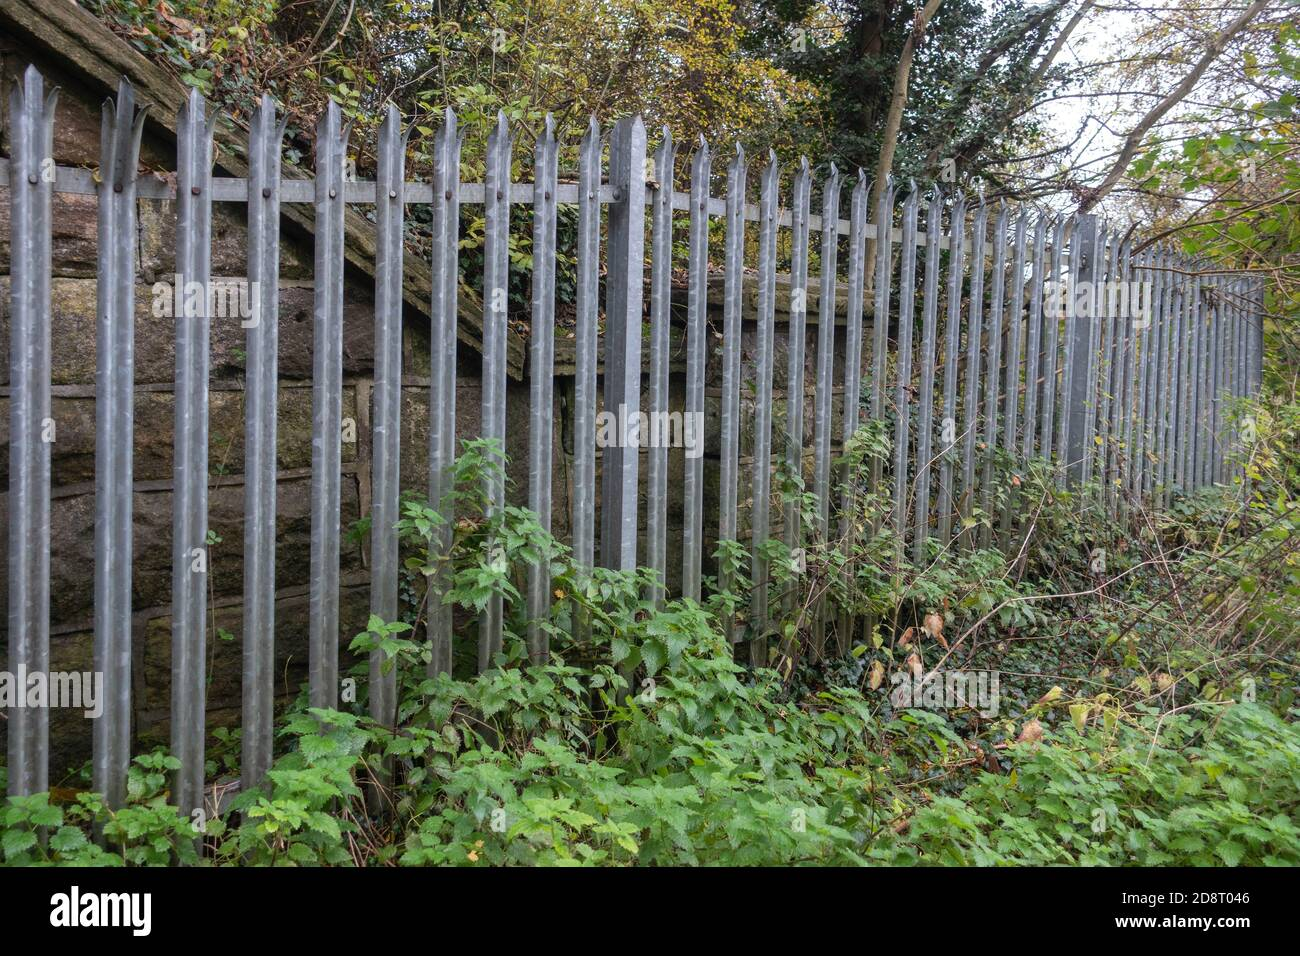 Galvanised steel palisade spiked security fencing on railway banks Stock Photo